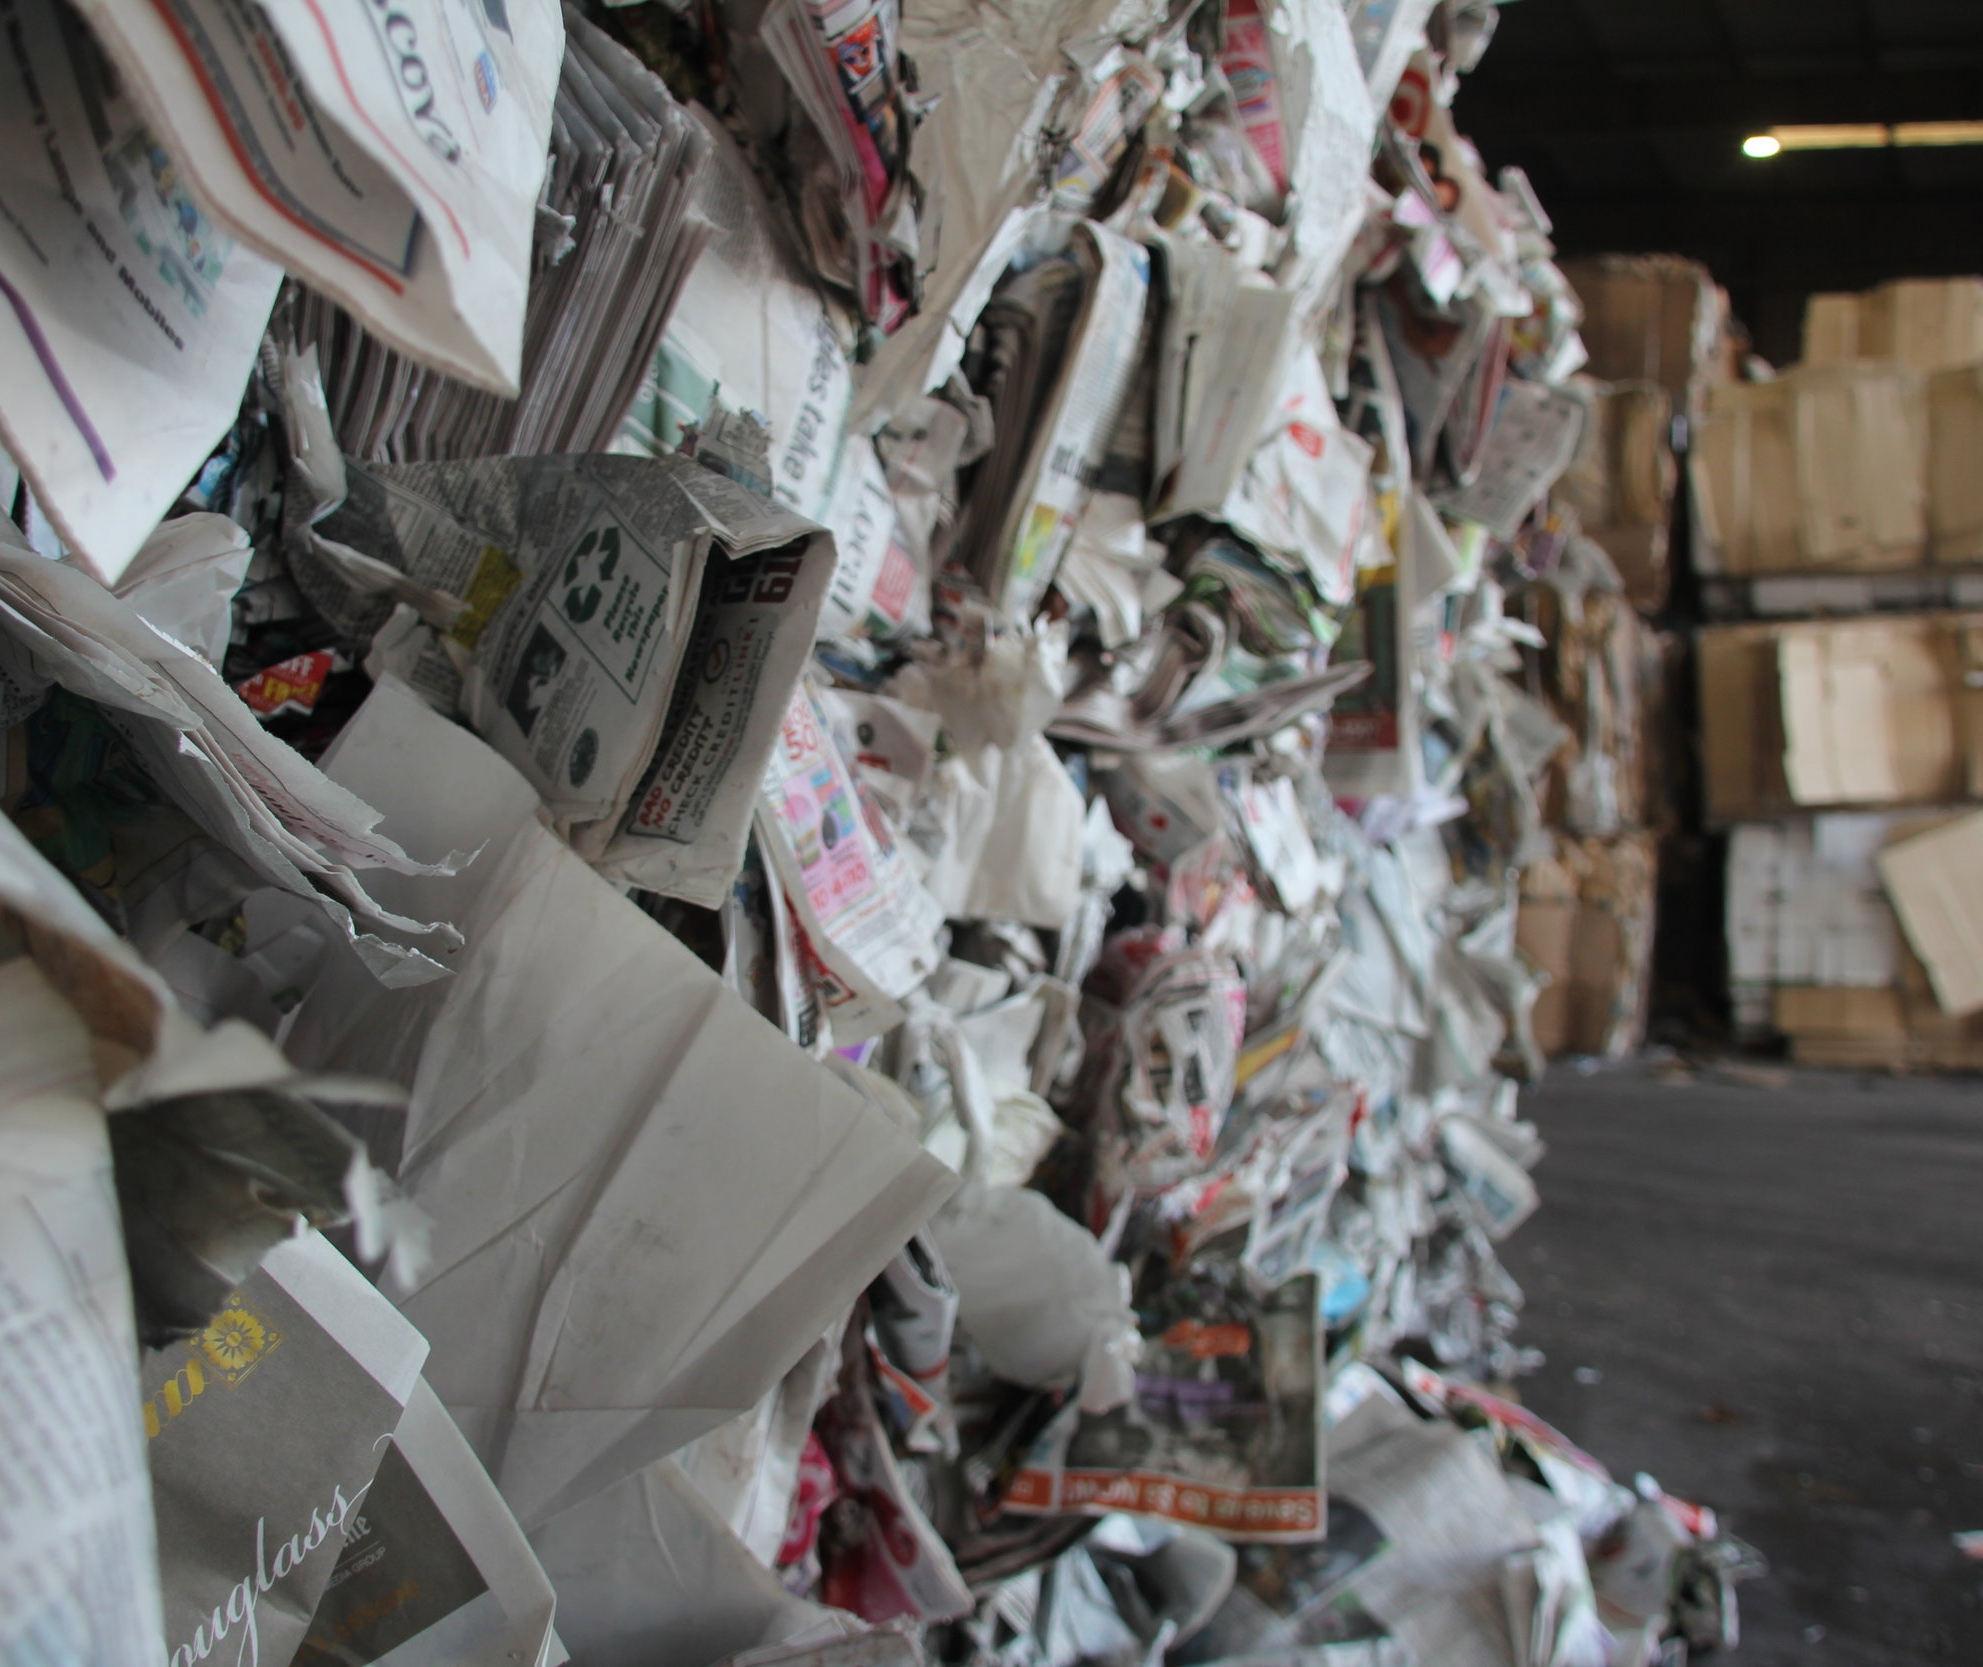 Services - United States Recycling offers a complete range of solutions to the recyclable generators in the tri-state area and beyond. Whether you are a printer, converter, direct mail house, bindery, box or carton plant, distribution center, chain store, beverage or food manufacturer, office park, hospital, municipal recycling plant, or other generator, we can help you design, implement and enjoy the benefits of a high-quality recycling program.